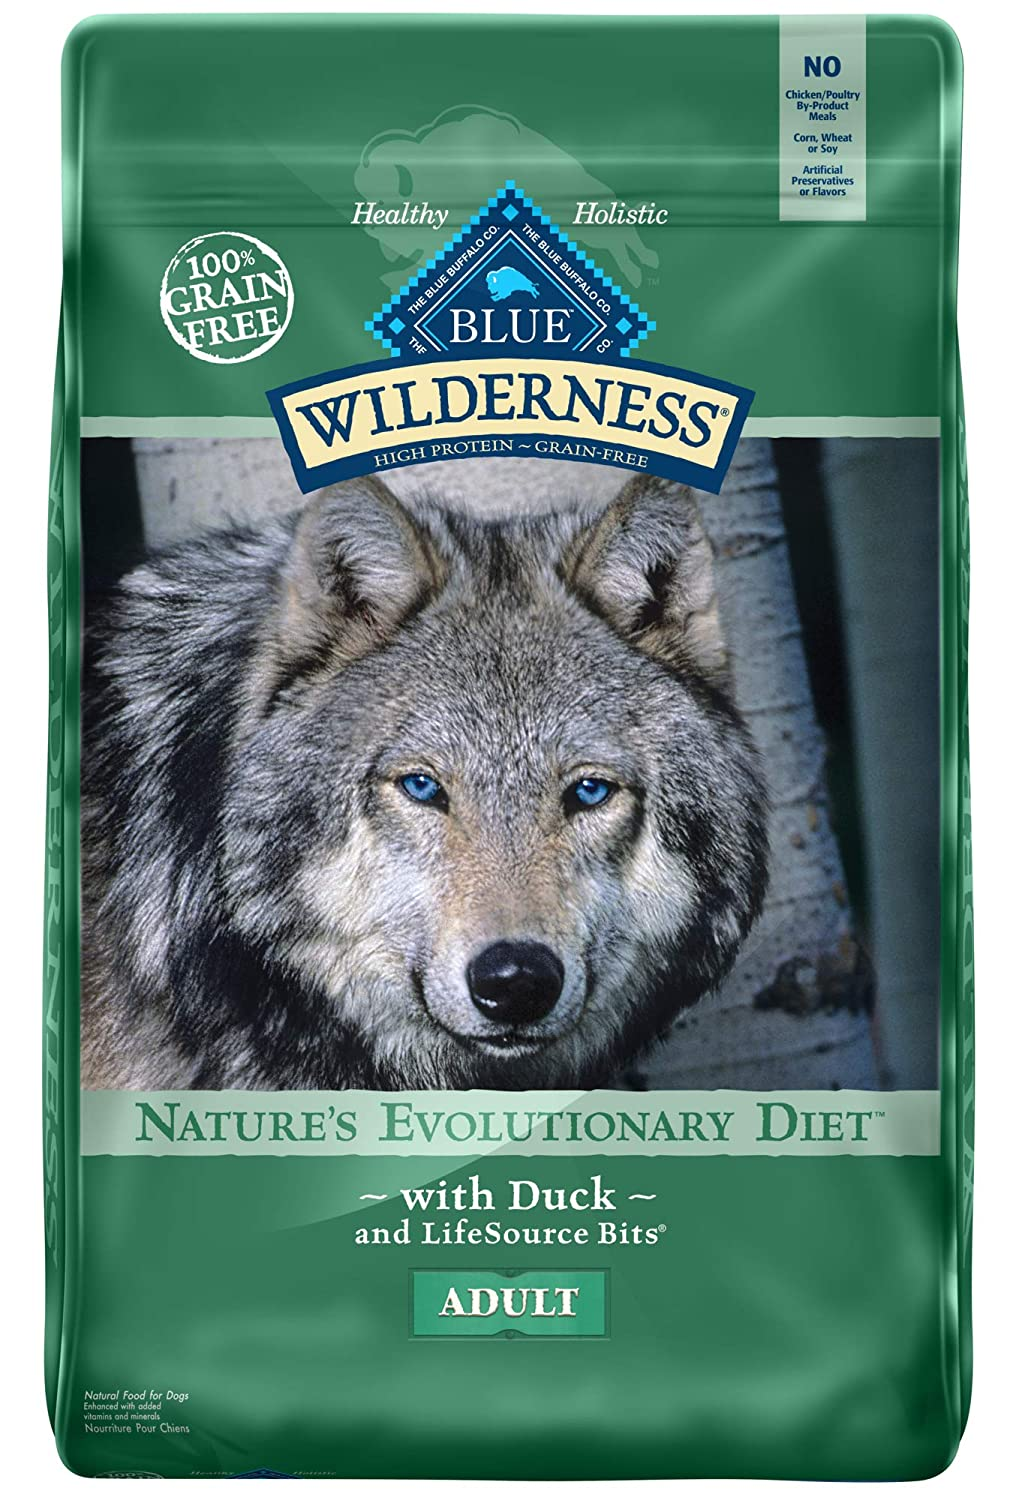 3.Blue Buffalo Wilderness High Protein Grain Free, Natural Adult Dog Food